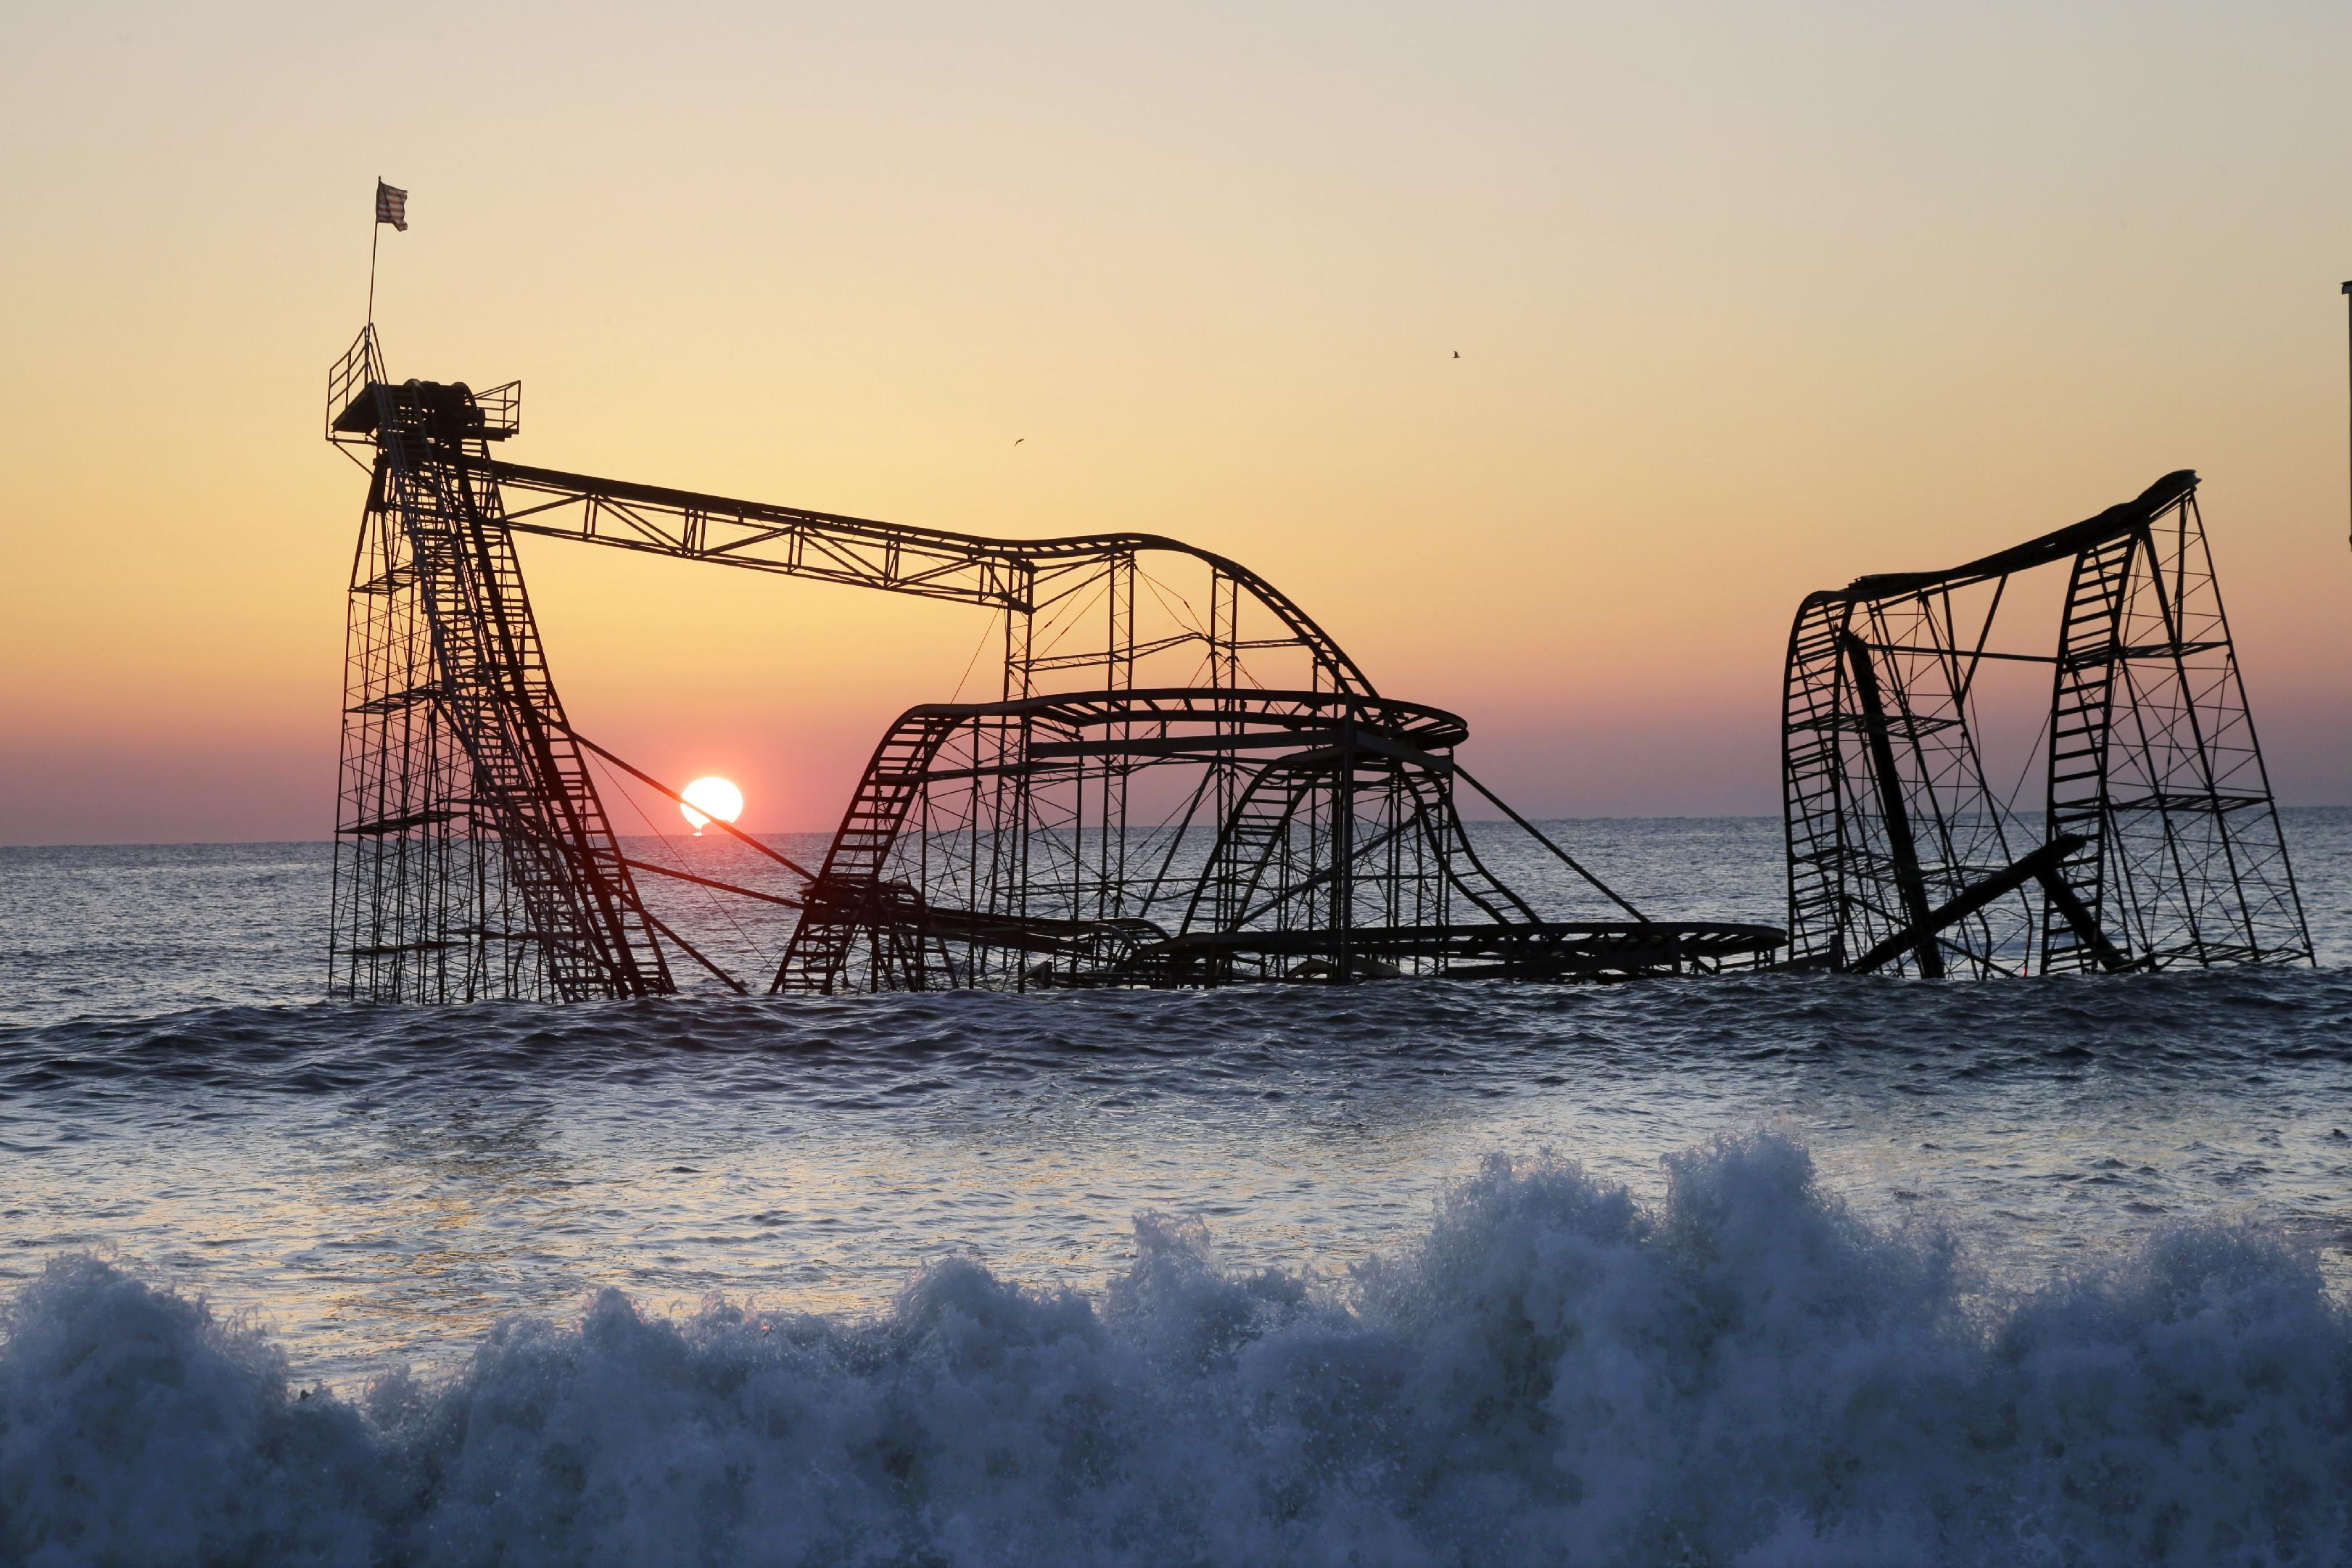 In a Feb. 25, 2013 file photo, the sun rises in Seaside Heights, N.J., behind the Jet Star Roller Coaster which has been sitting in the ocean after part of the Casino Pier was destroyed during Superstorm Sandy. Work is expected to start Tuesday afternoon, May 14, 2013 to remove the Jet Star coaster from the surf in Seaside Heights. — AP Photo